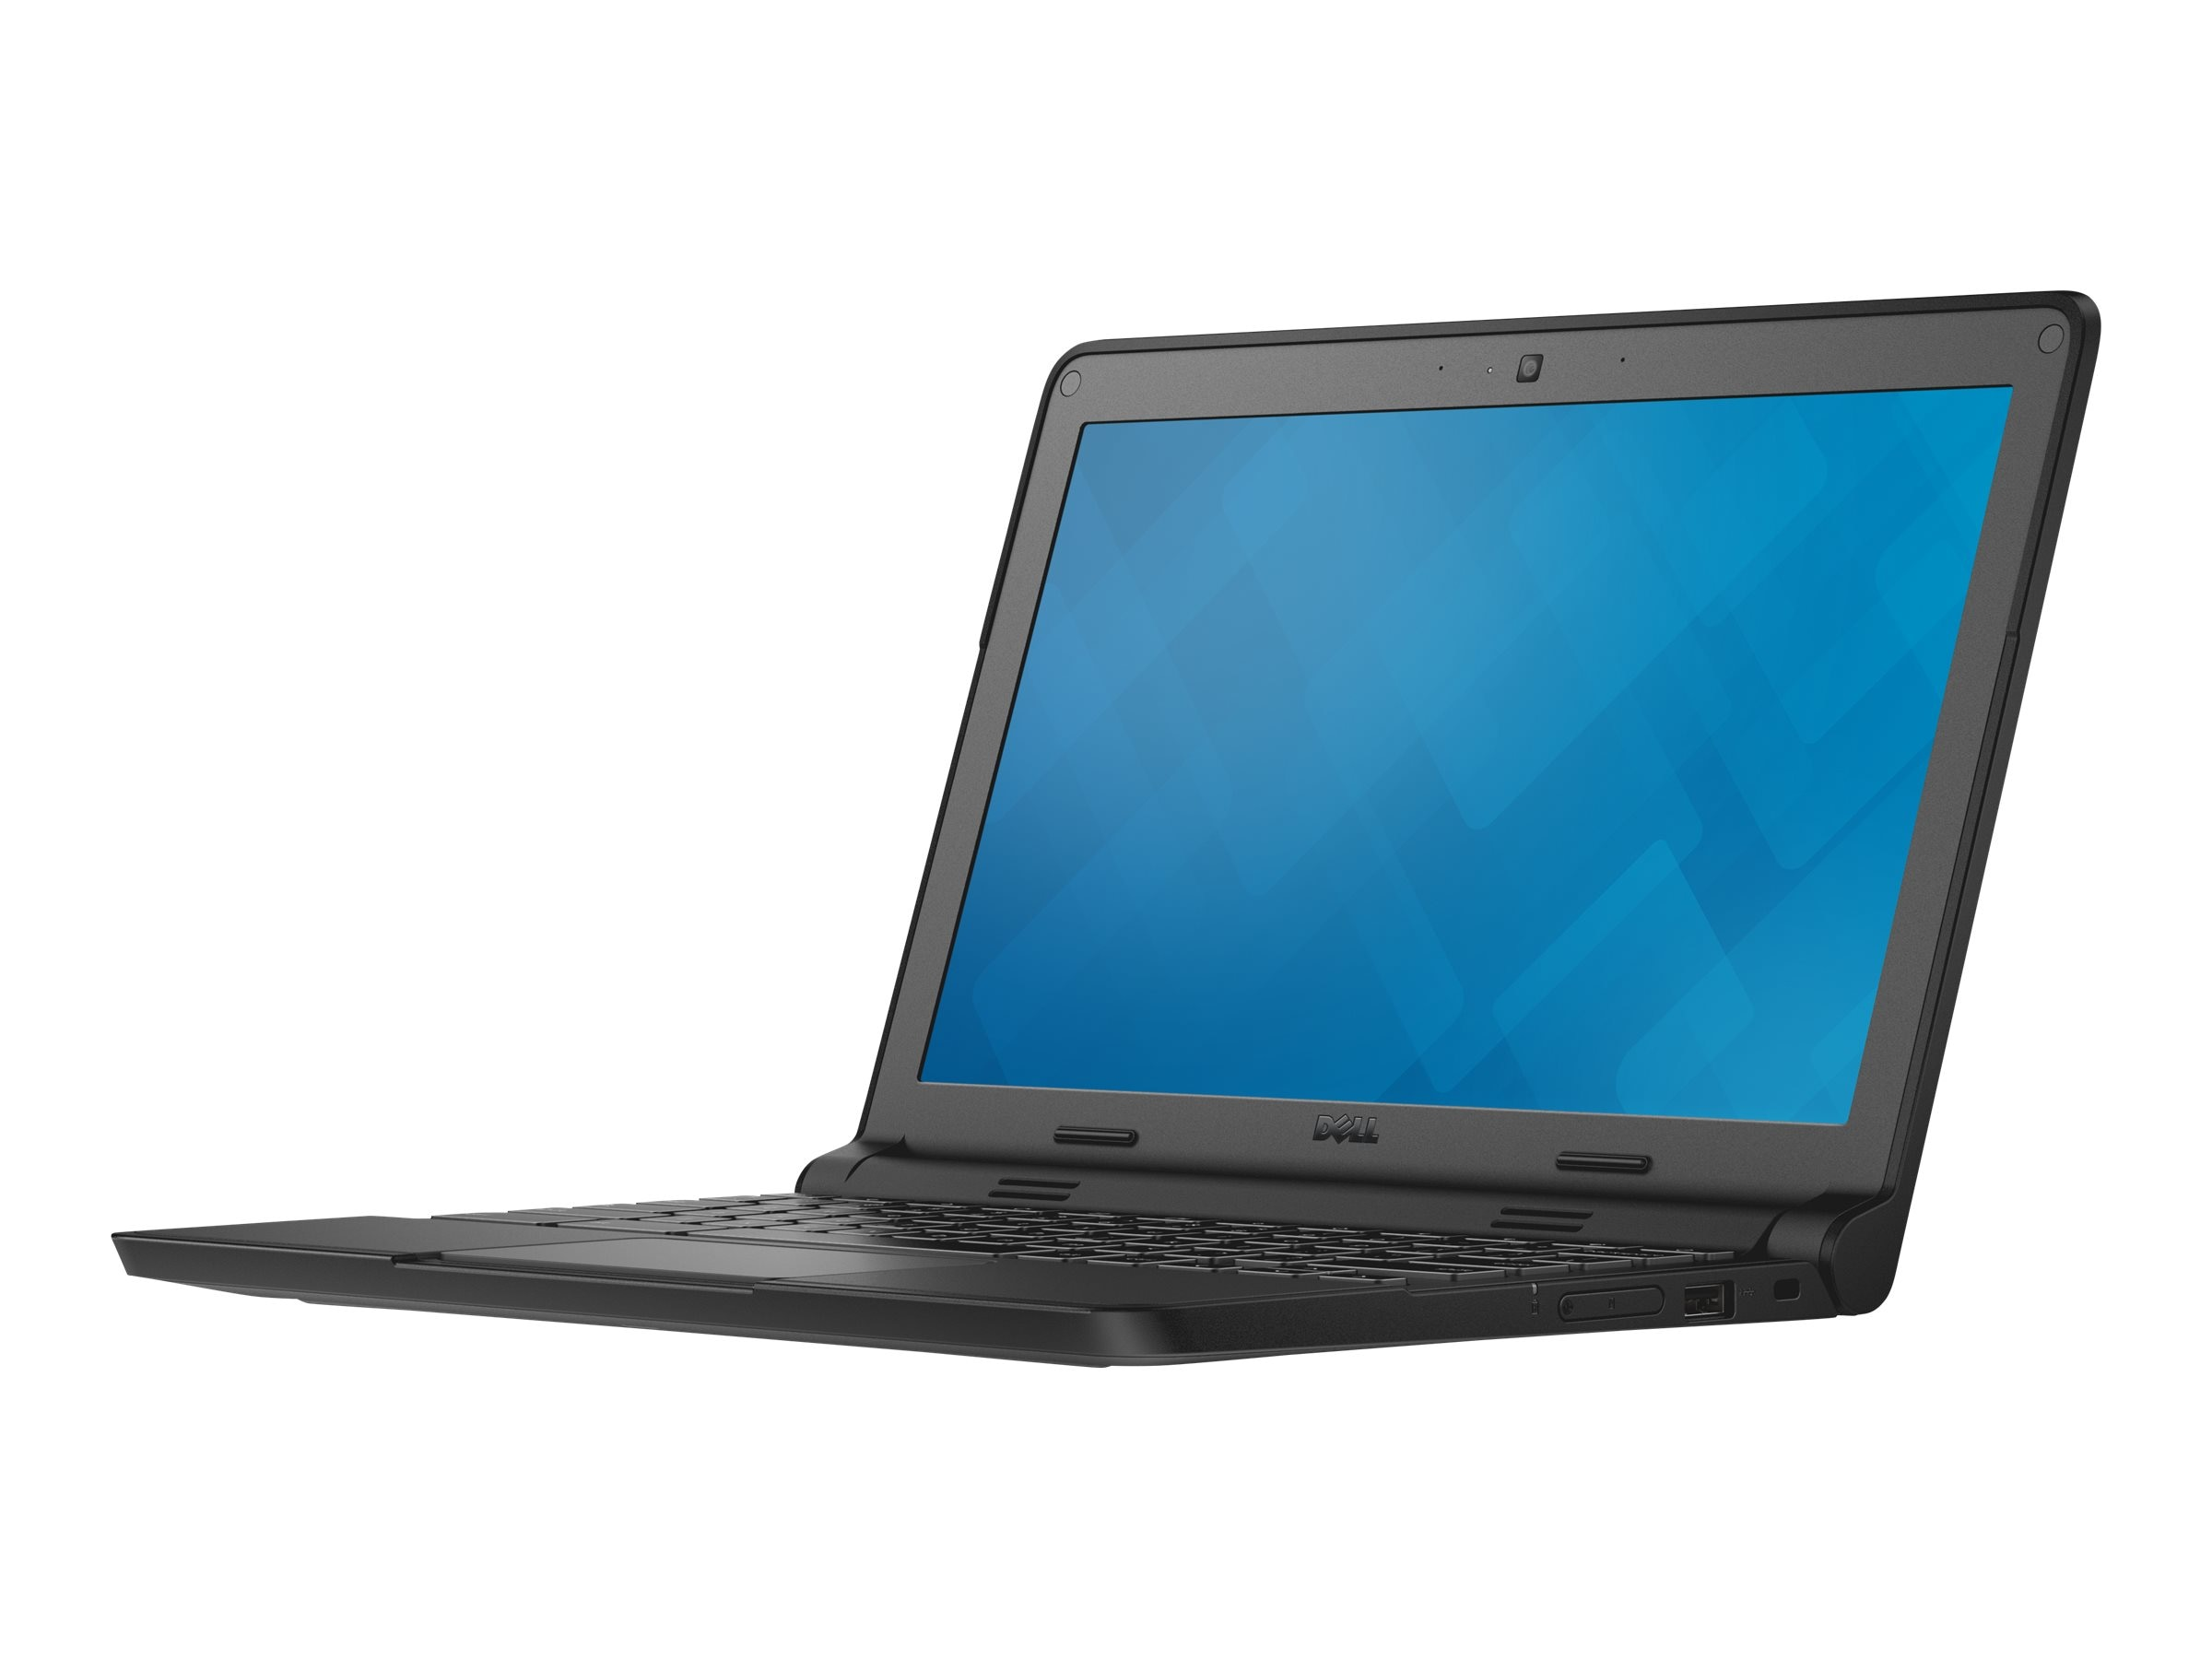 Dell XDGJH Image 1